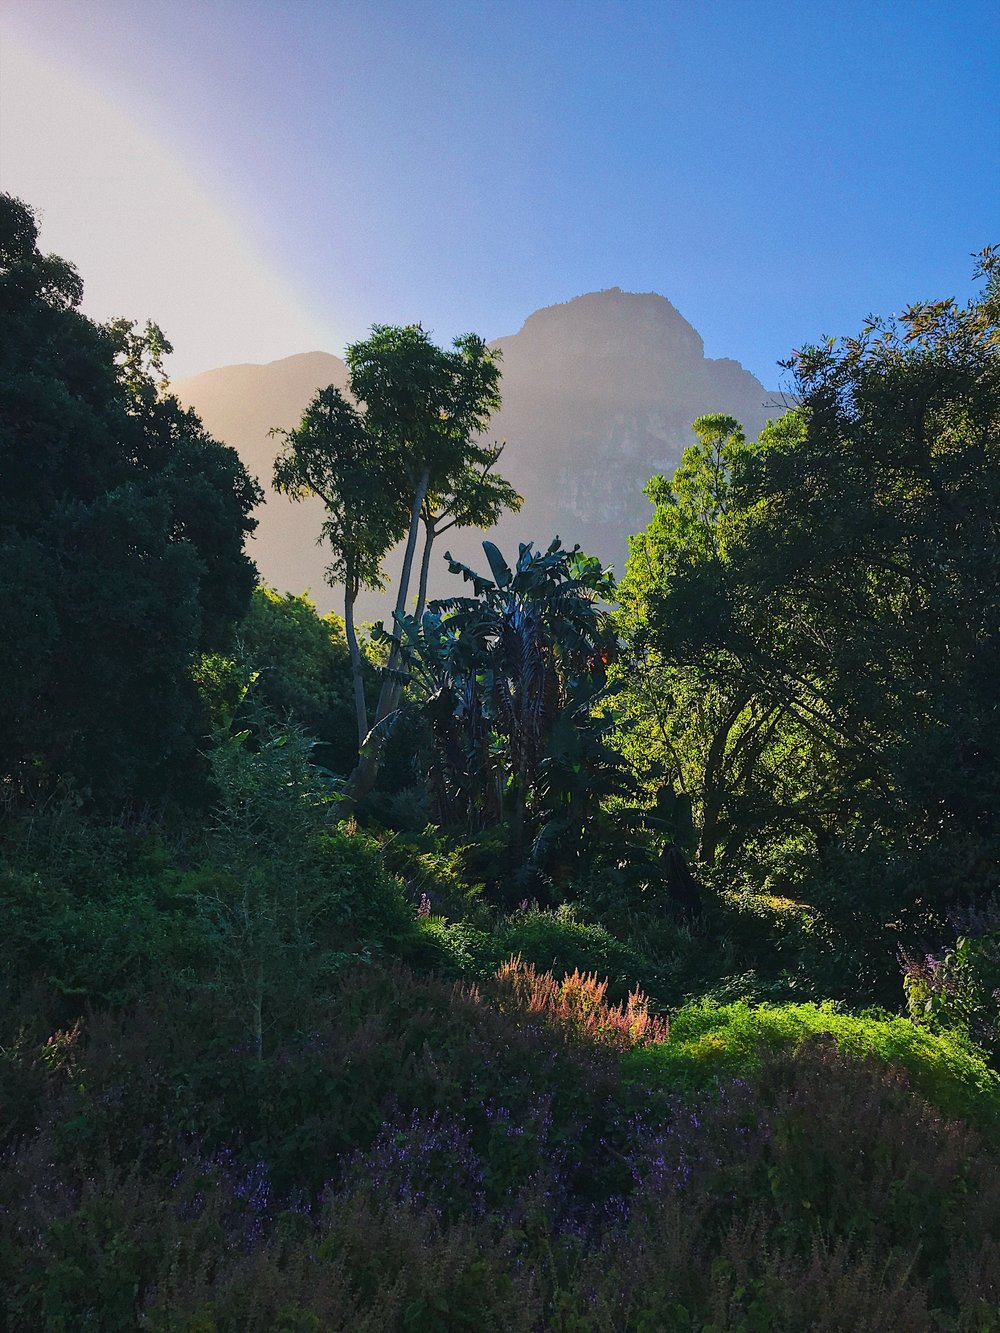 The magical Kirstenbosch Botanic Gardens.